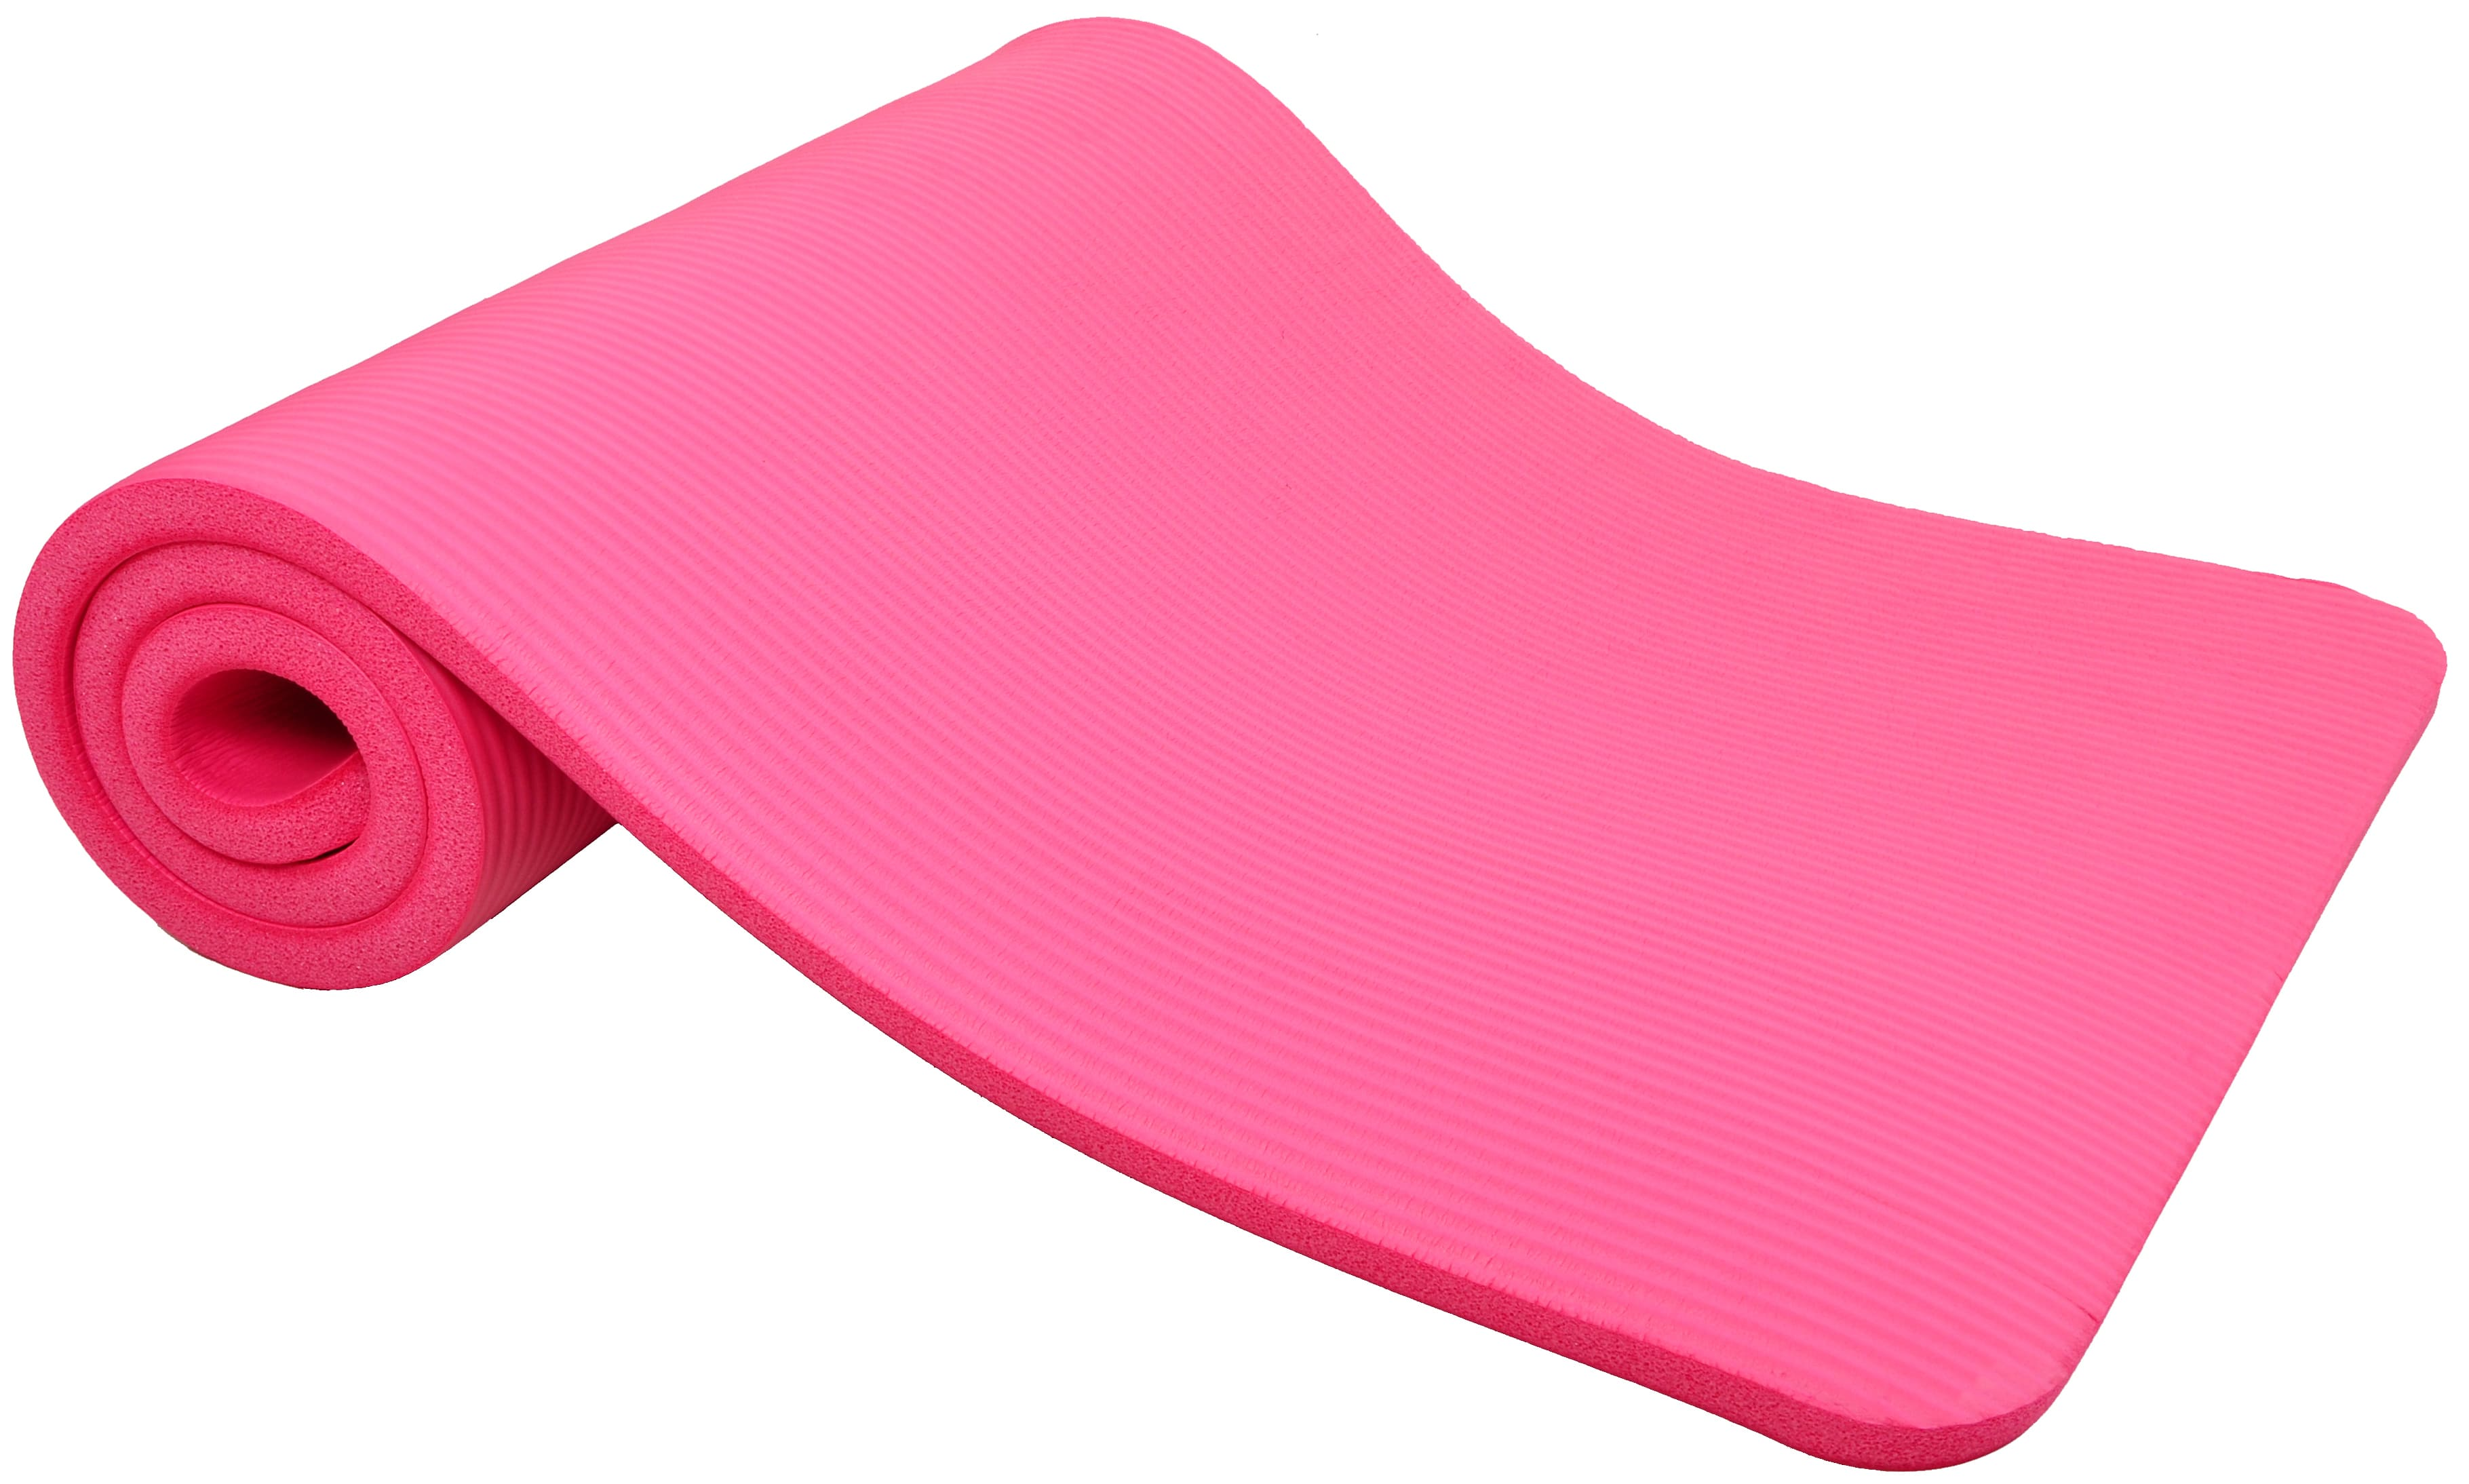 [US Direct] Original BalanceFrom GoCloud All-Purpose 1-Inch Extra Thick High Density Anti-Tear Exercise Yoga Mat with Carrying Strap, Black Pink